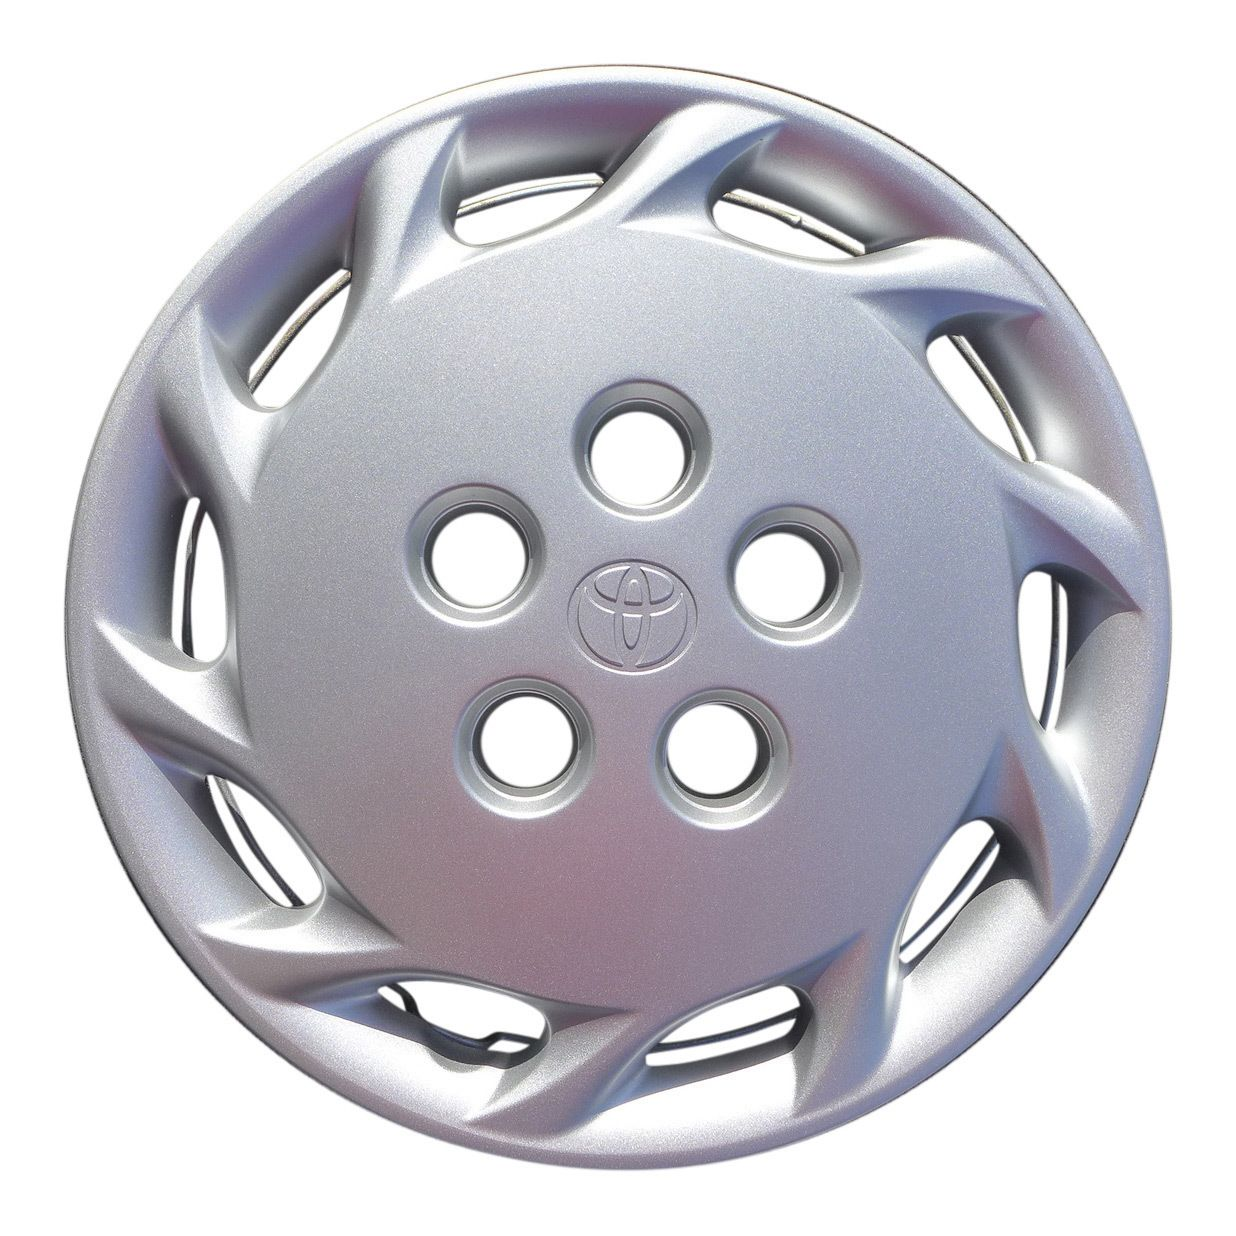 Brand new 1997 1998 1999 toyota camry hubcap wheel cover 14 61088